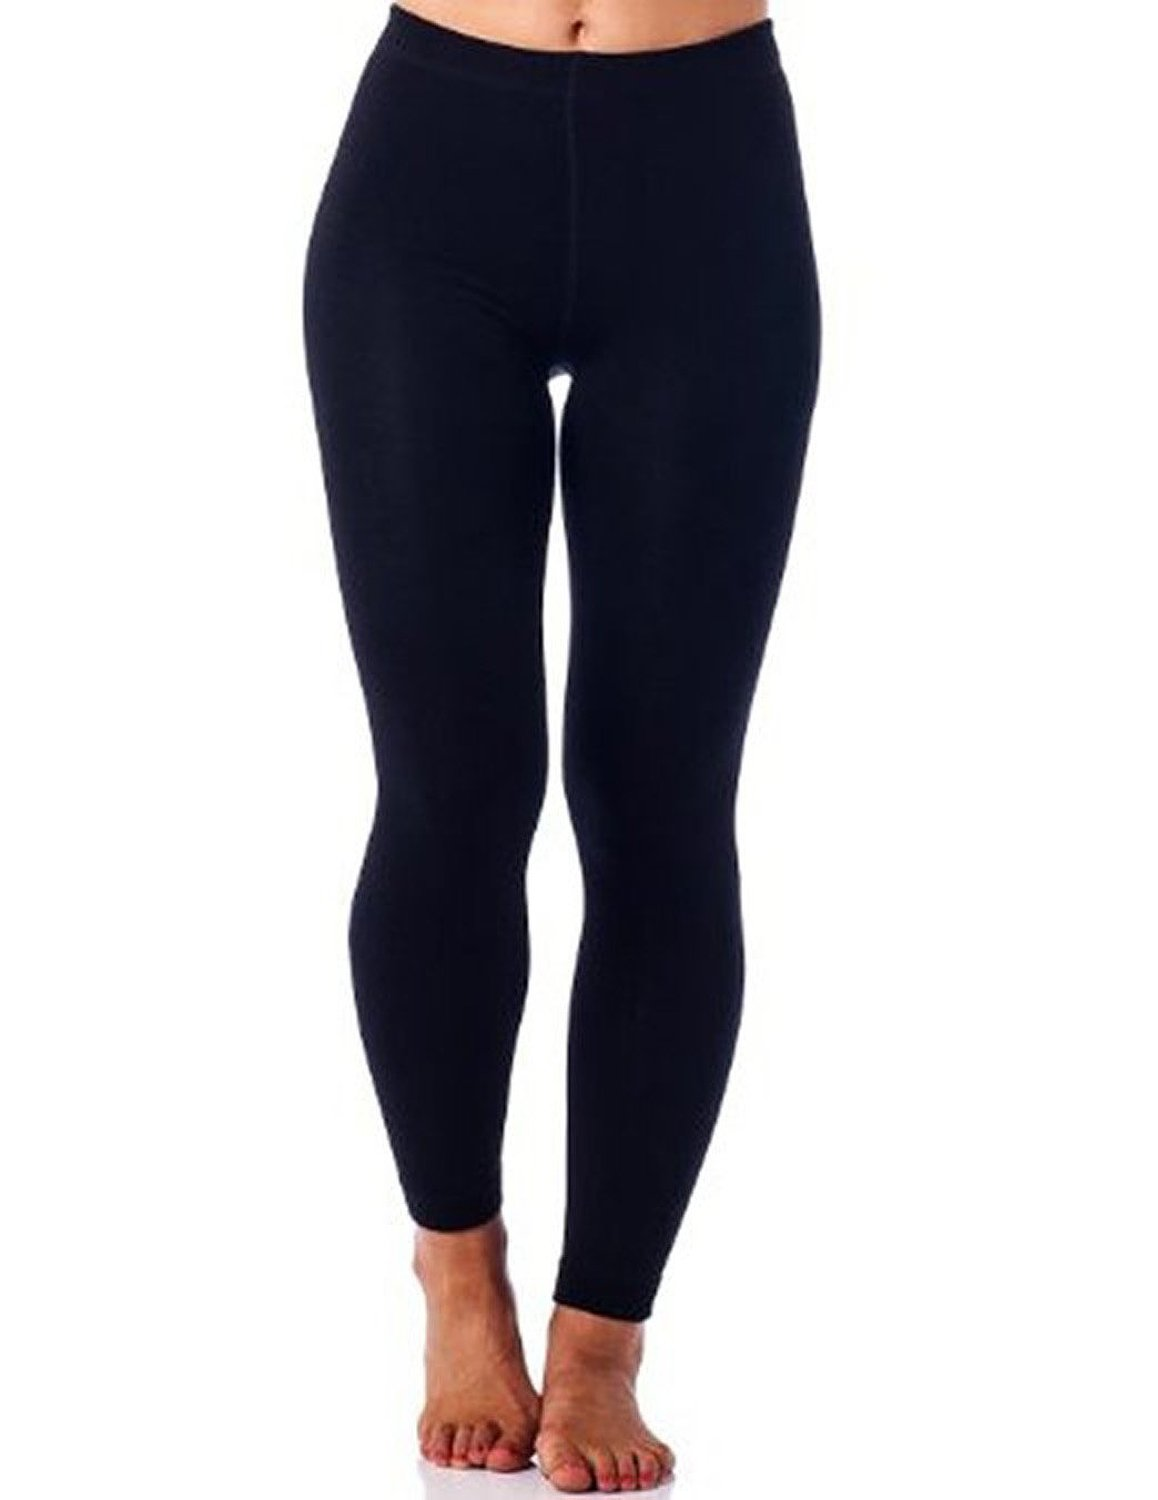 2-Pack Women s Plus Size Fleece Lined Leggings